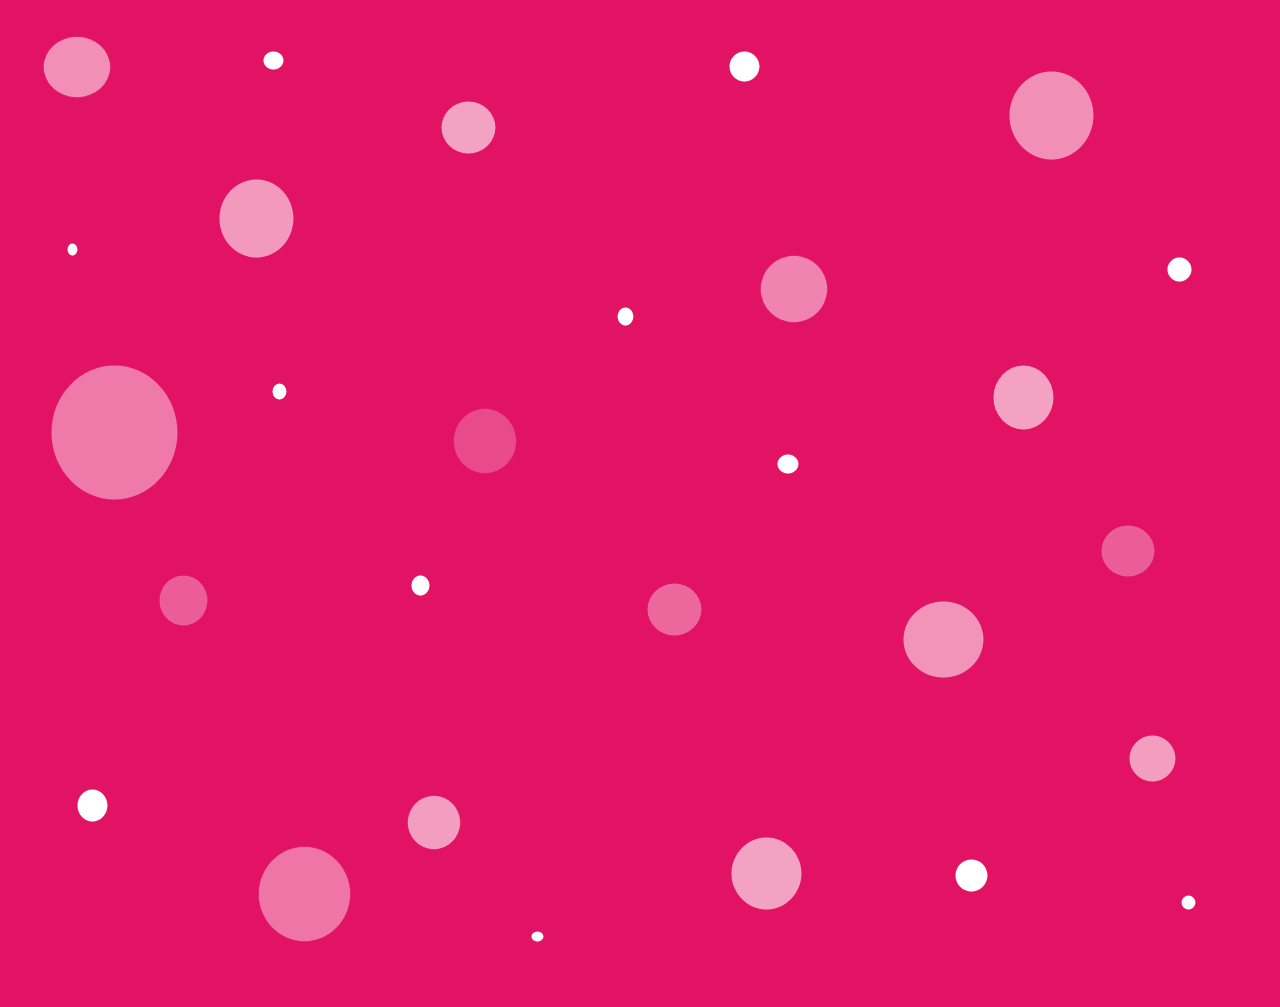 Dark pink with bubbles Backgrounds